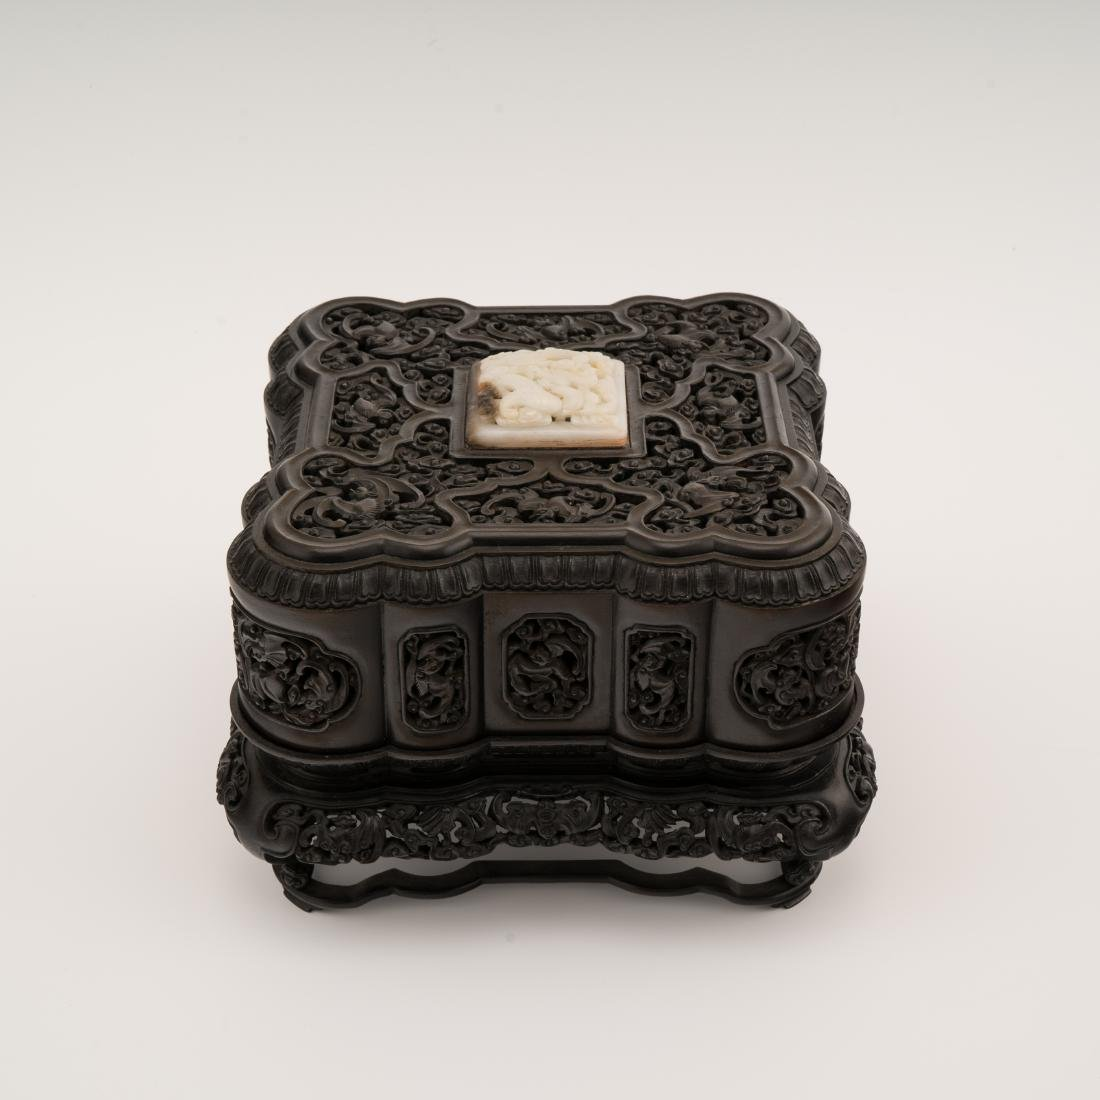 QING HEAVILY CARVED ZITAN BOX WITH MUTTONFAT JADE